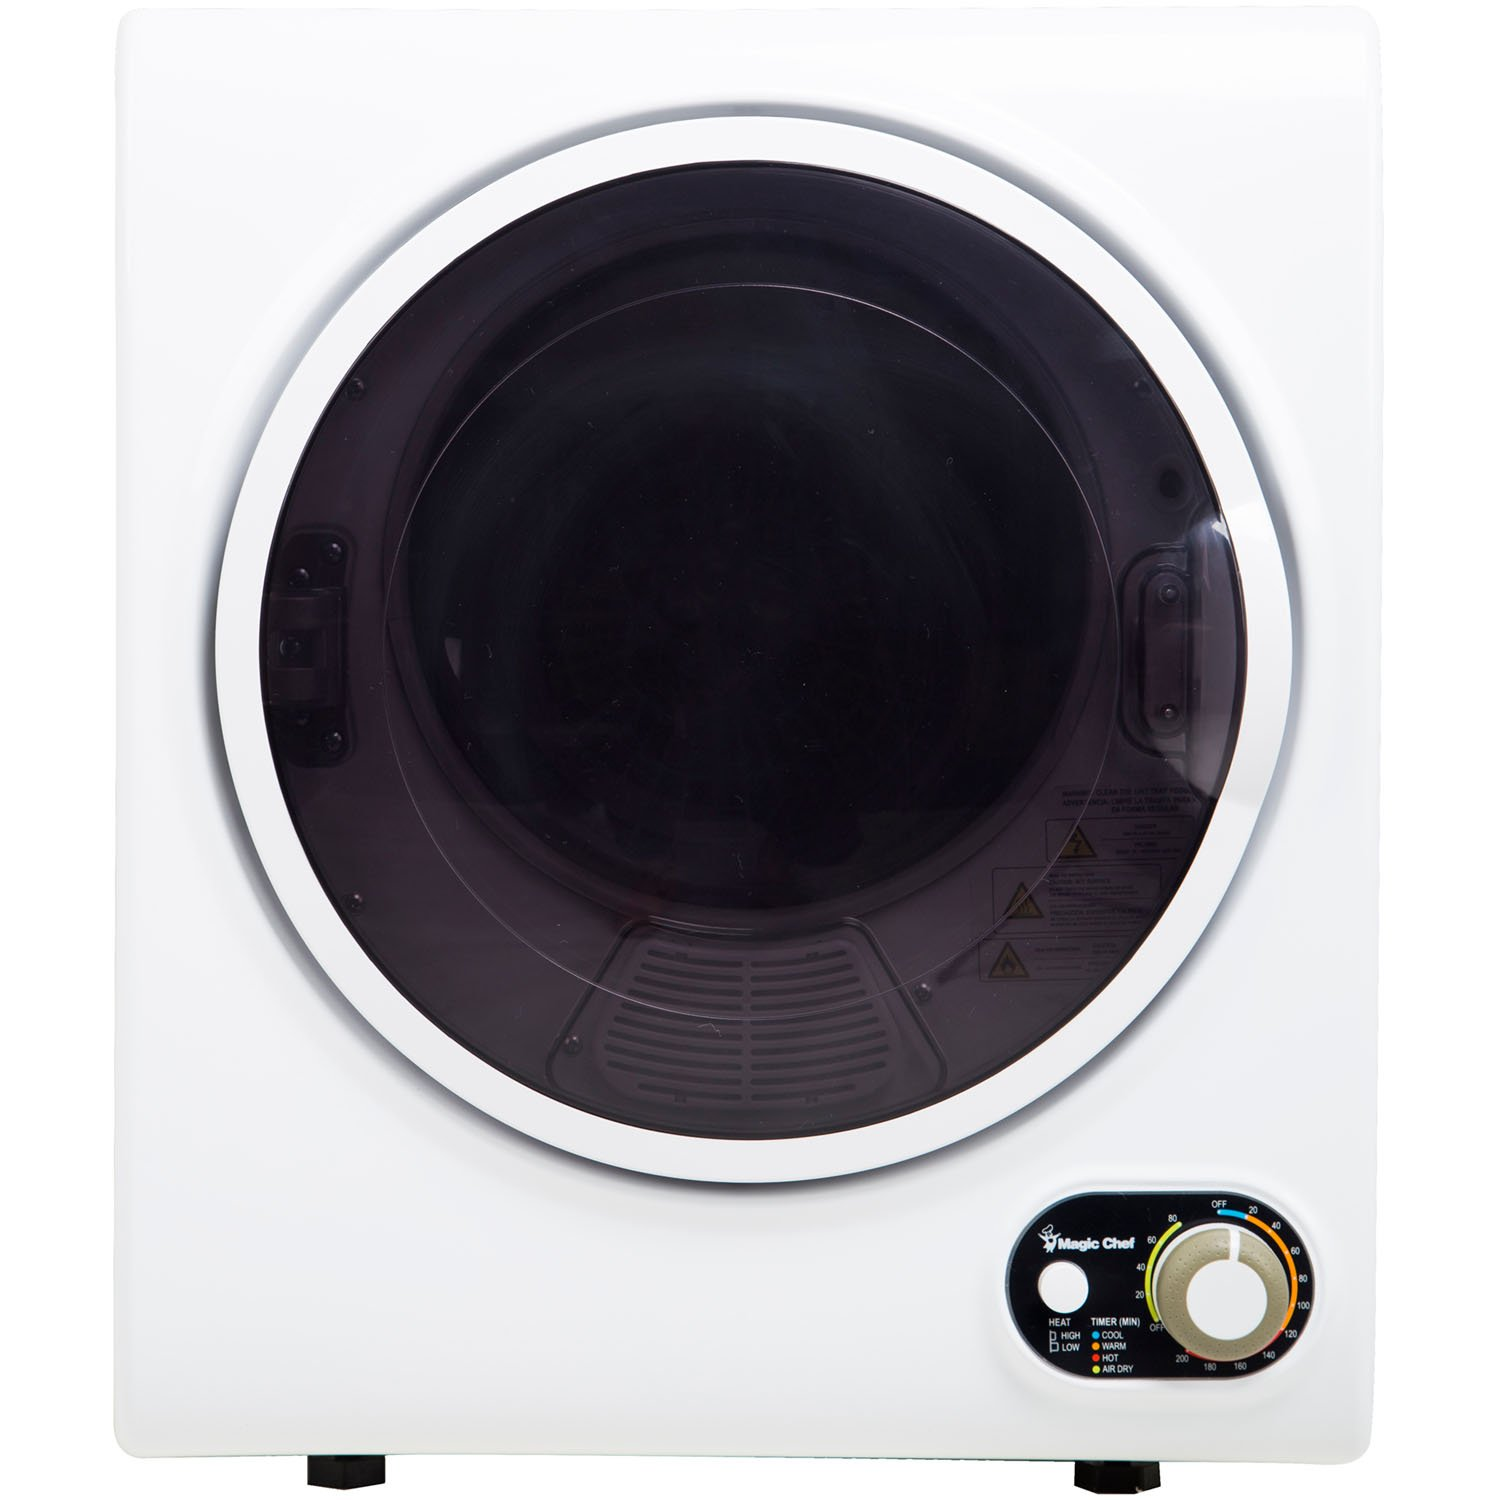 Magic Chef Compact Electric MCSDRY15W 1.5 cu. ft. Laundry Dryer, White by Magic Chef